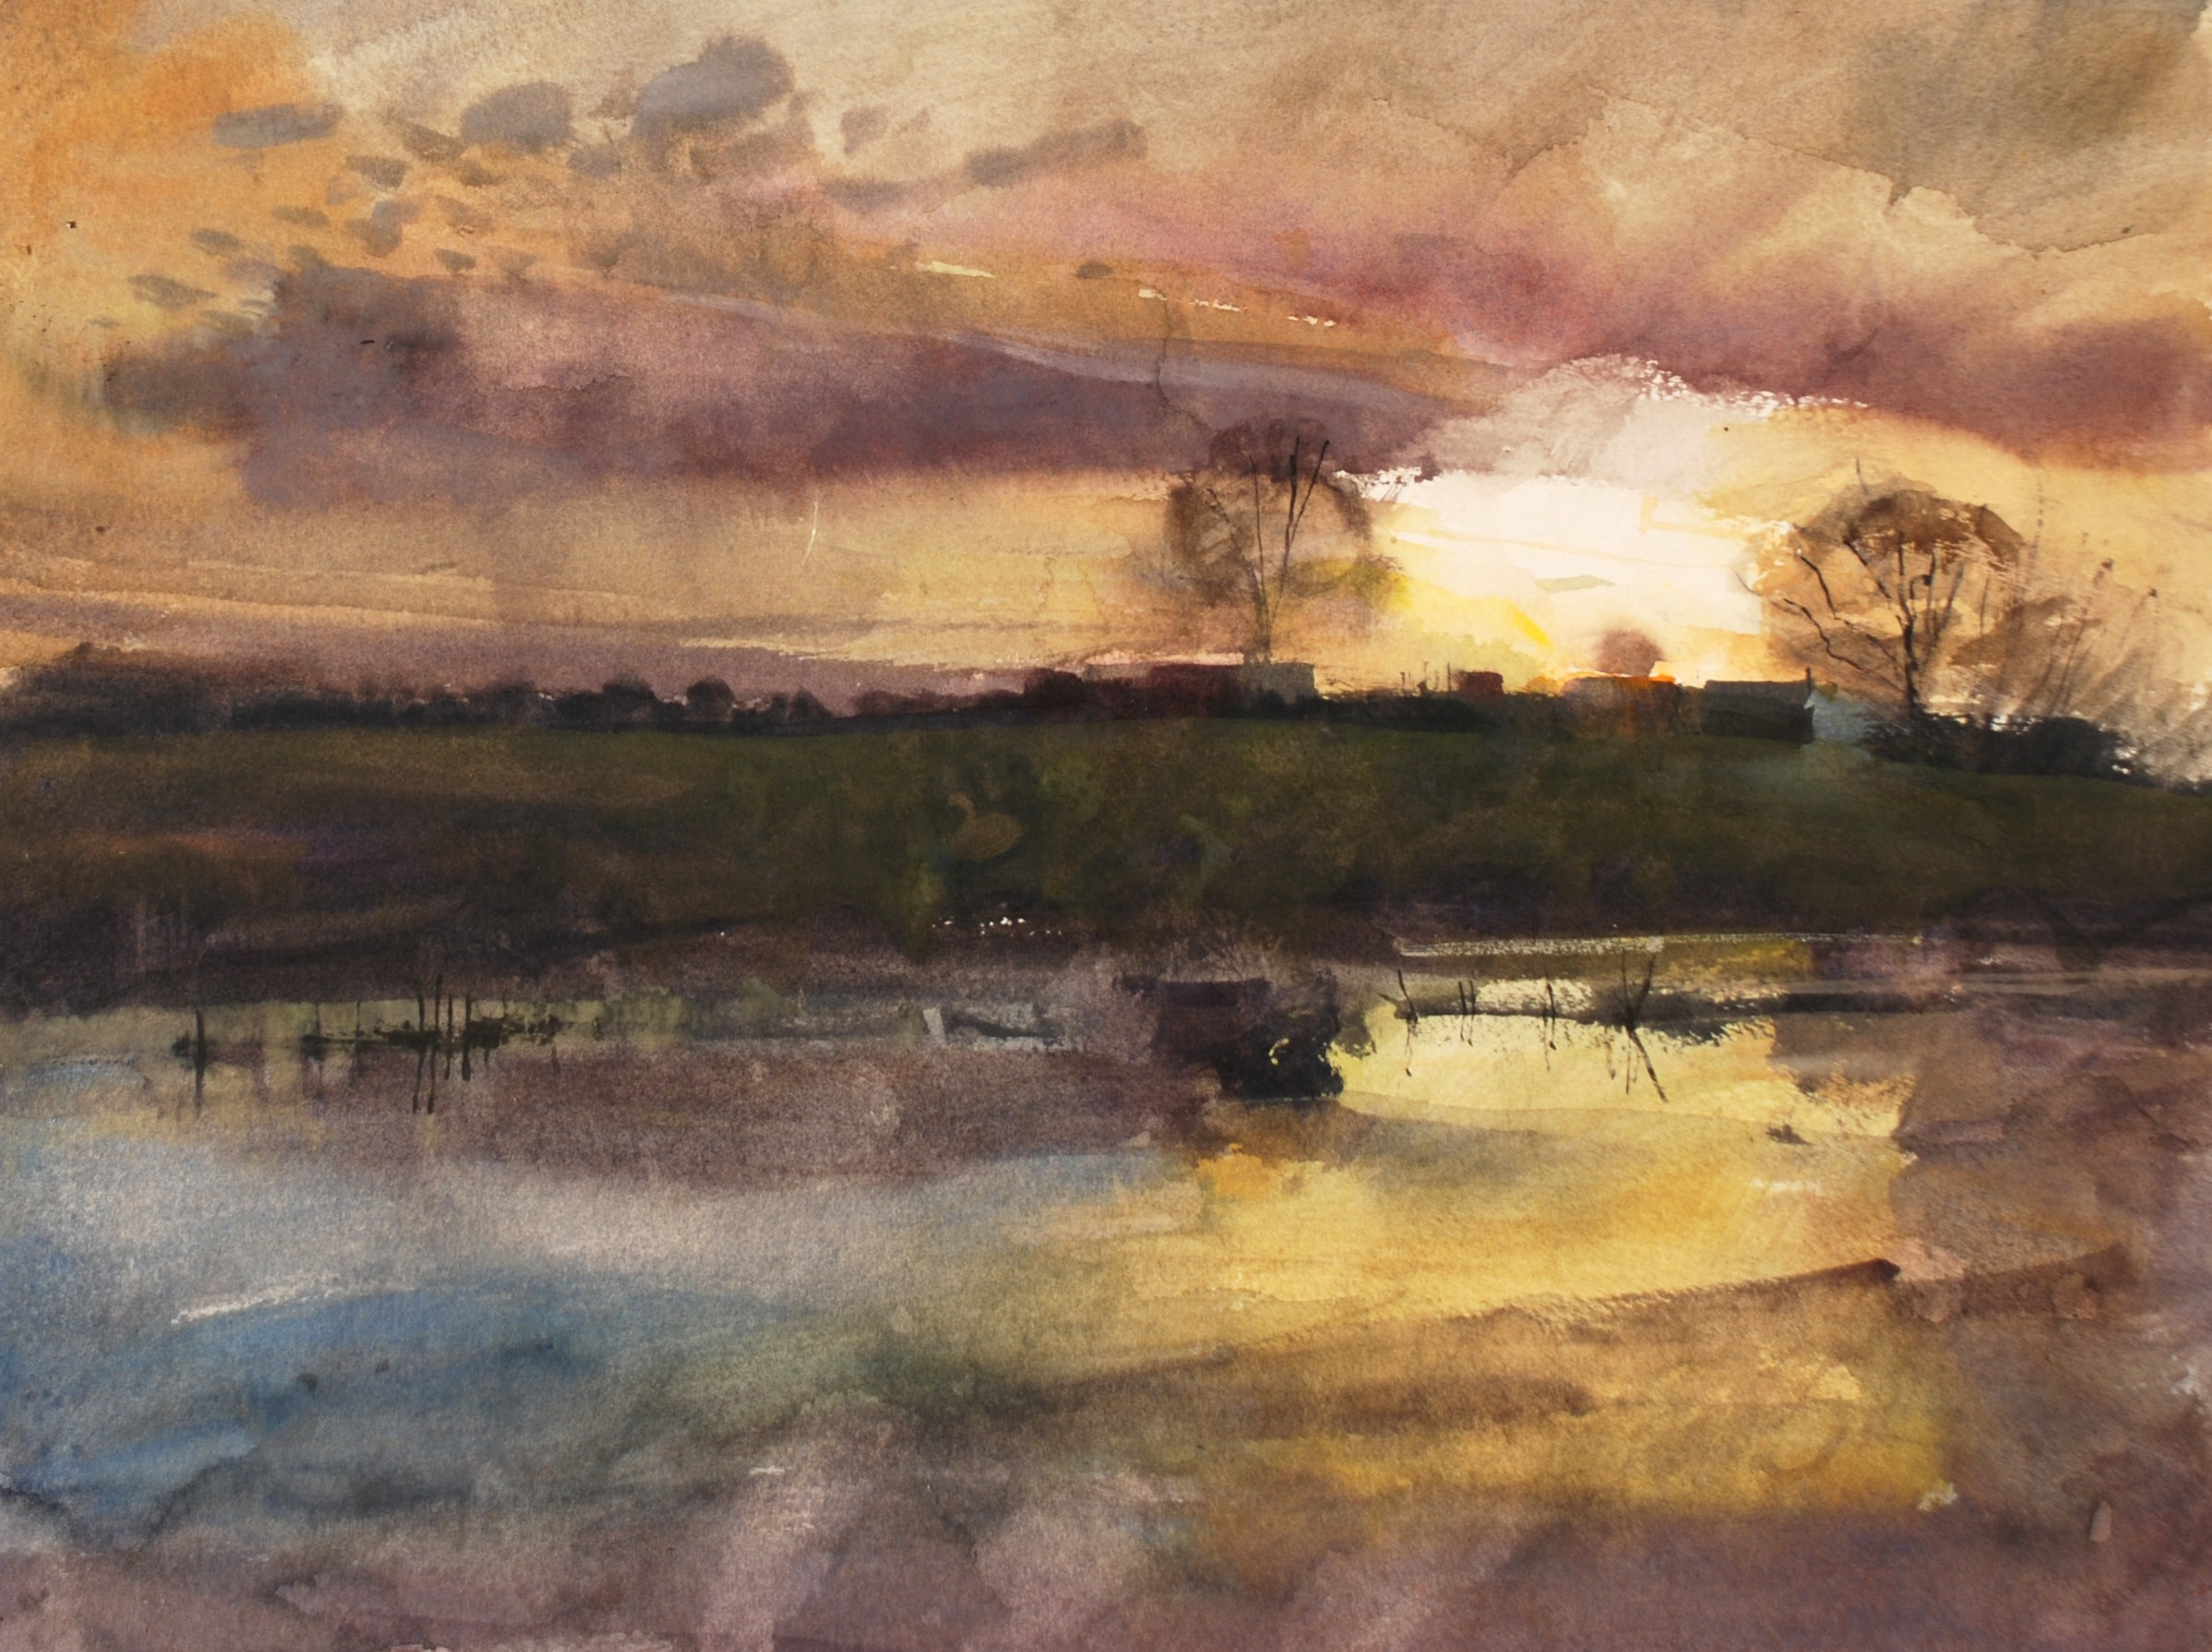 <span class=&#34;link fancybox-details-link&#34;><a href=&#34;/exhibitions/24/works/artworks_standalone10769/&#34;>View Detail Page</a></span><div class=&#34;artist&#34;><span class=&#34;artist&#34;><strong>Pikesley</strong></span></div><div class=&#34;title&#34;><em>Stour, After the Swans, Winter Afternoon</em></div><div class=&#34;medium&#34;>watercolour</div><div class=&#34;dimensions&#34;>51x61cm</div>